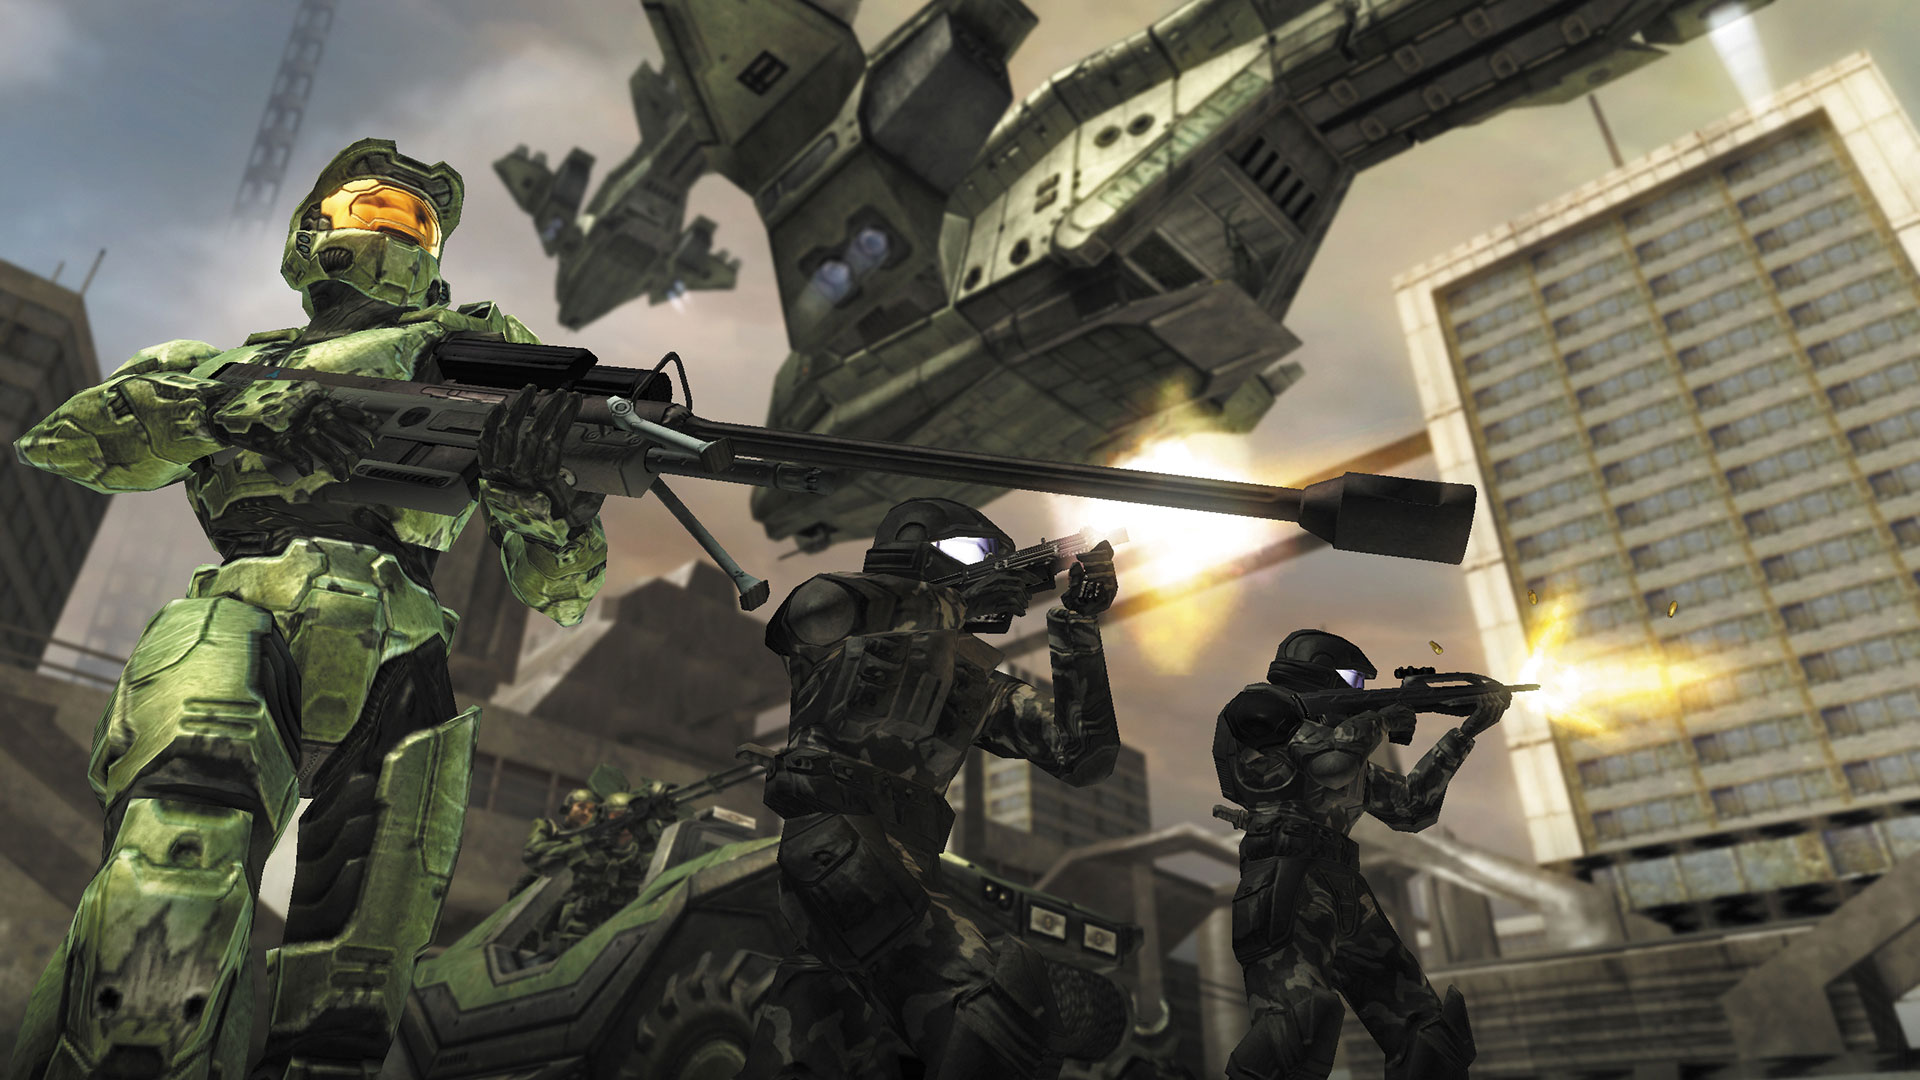 Halo 2 Pc Beta Tests Scheduled To Start Today Den Of Geek